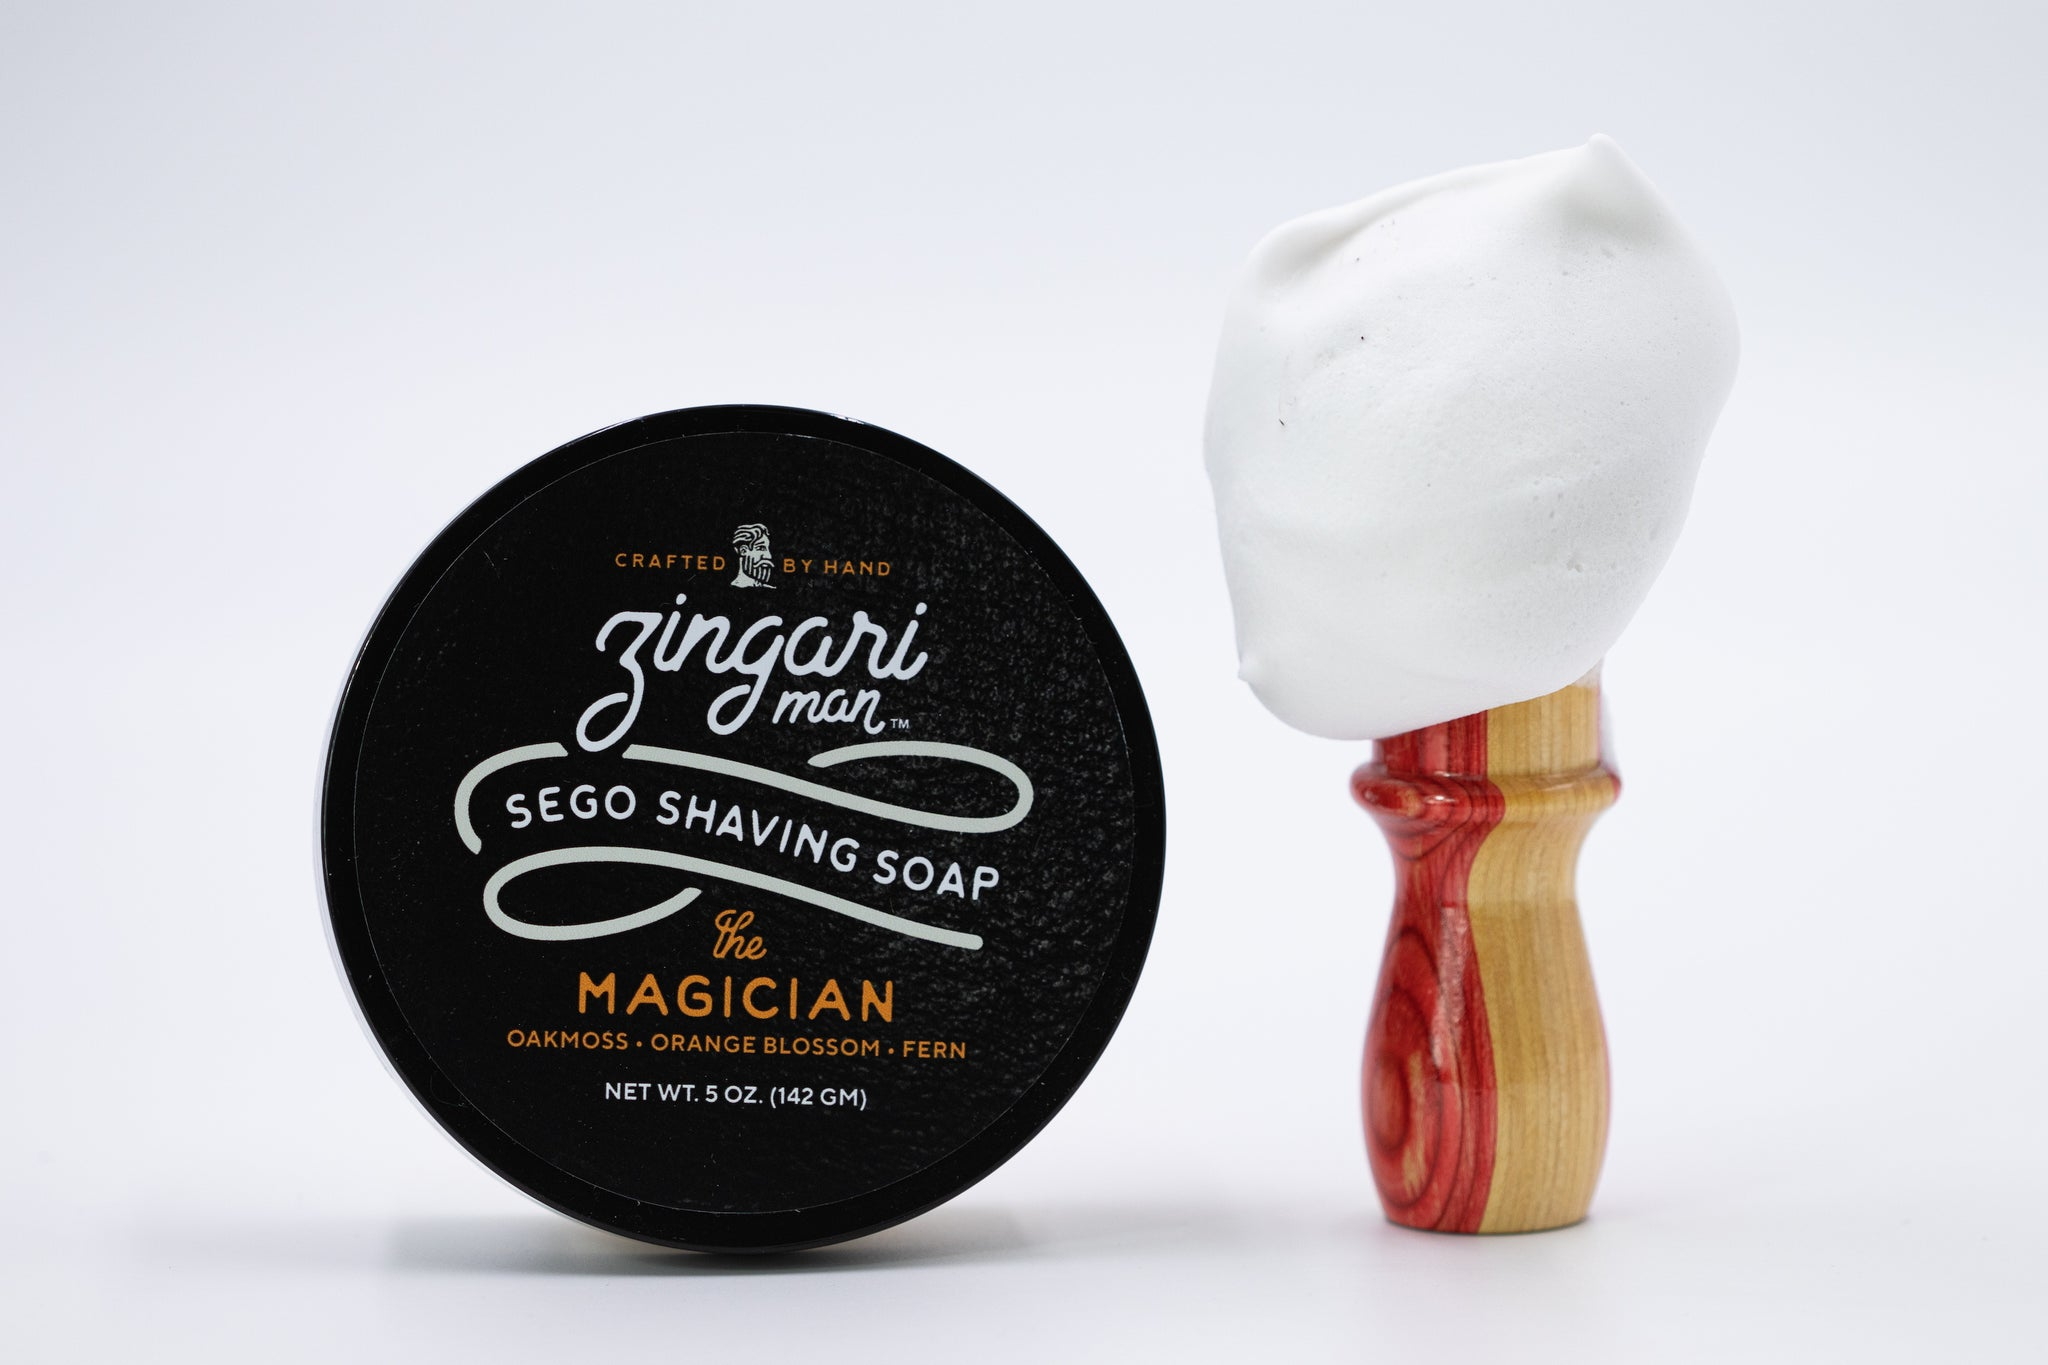 Zingari Man 'The Magician' Luxury Tallow Shaving Soap